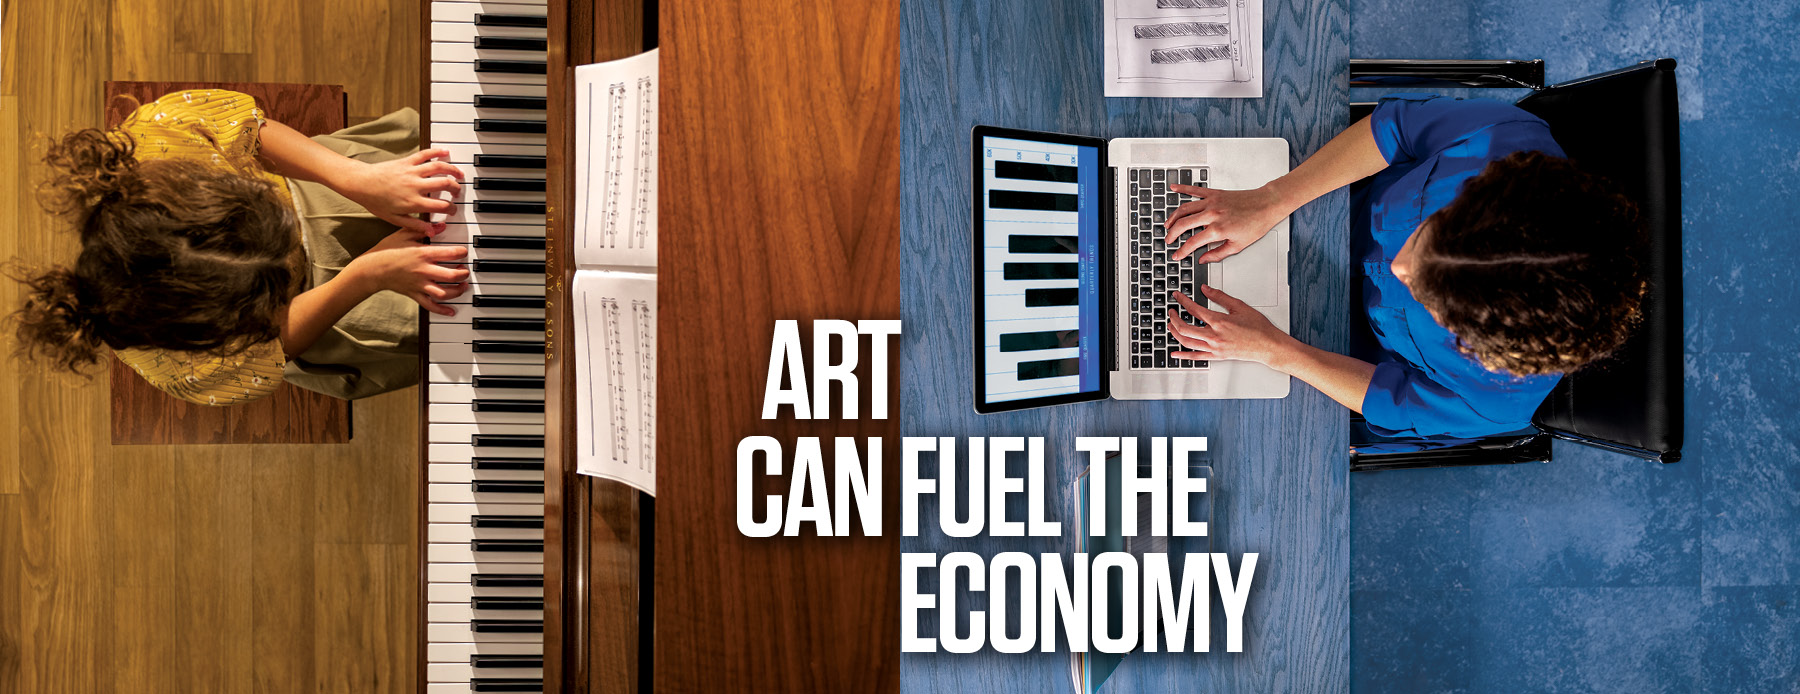 Art can fuel the economy